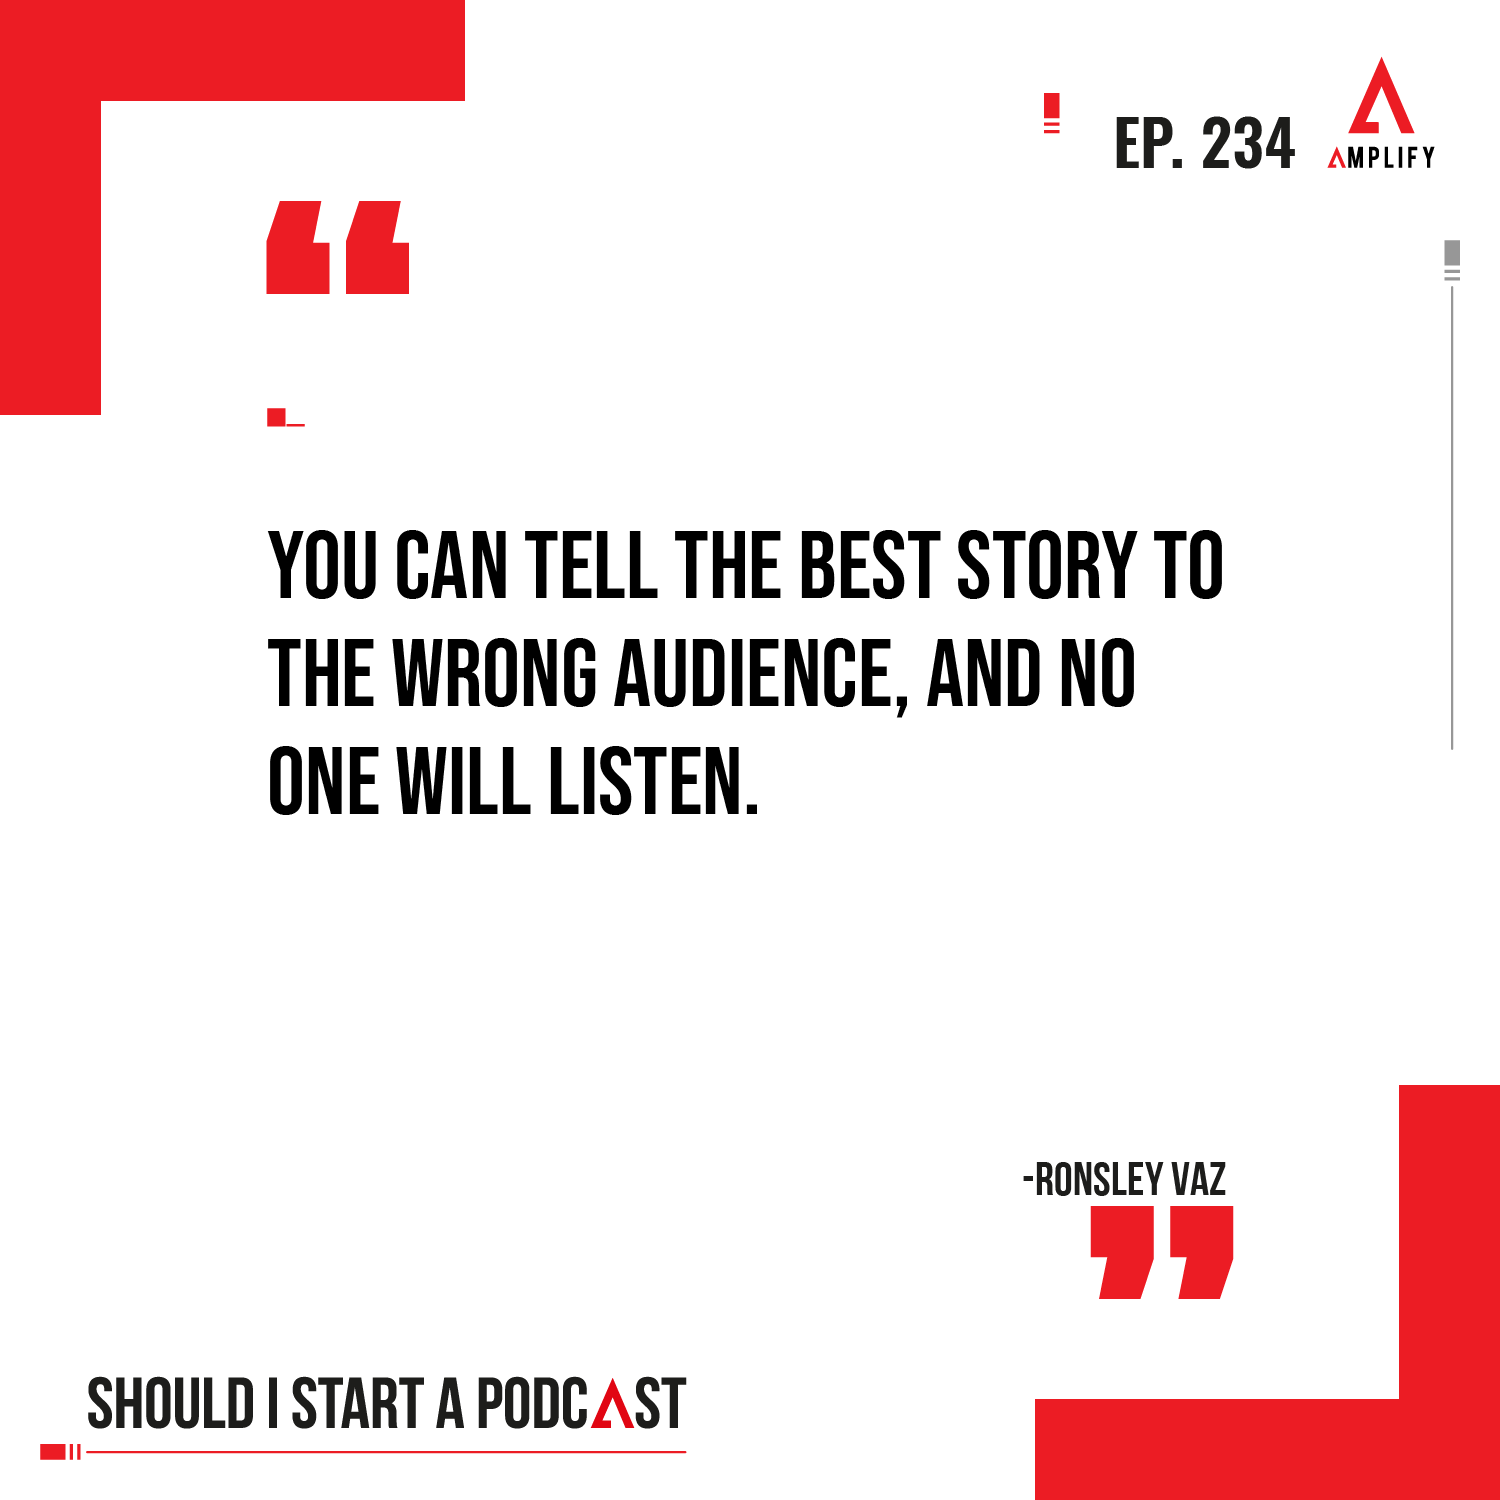 Quote: You can tell the best story to the wrong audience, and no one will listen.